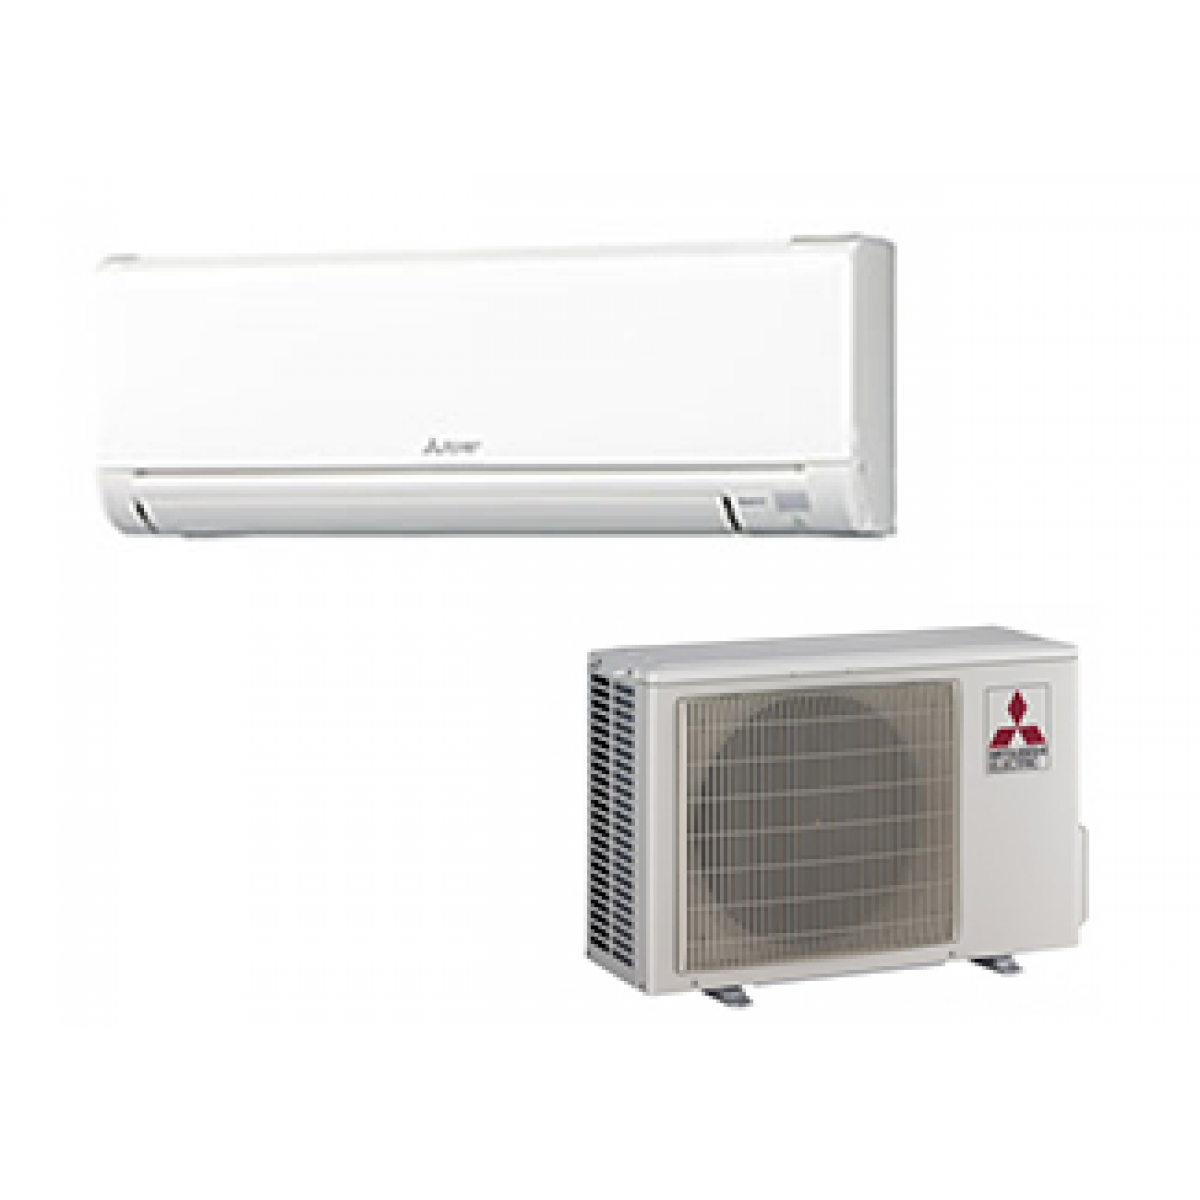 Ductless Ac Of Mitsubishi 12k Btu 23 5 Seer Cooling Only System In